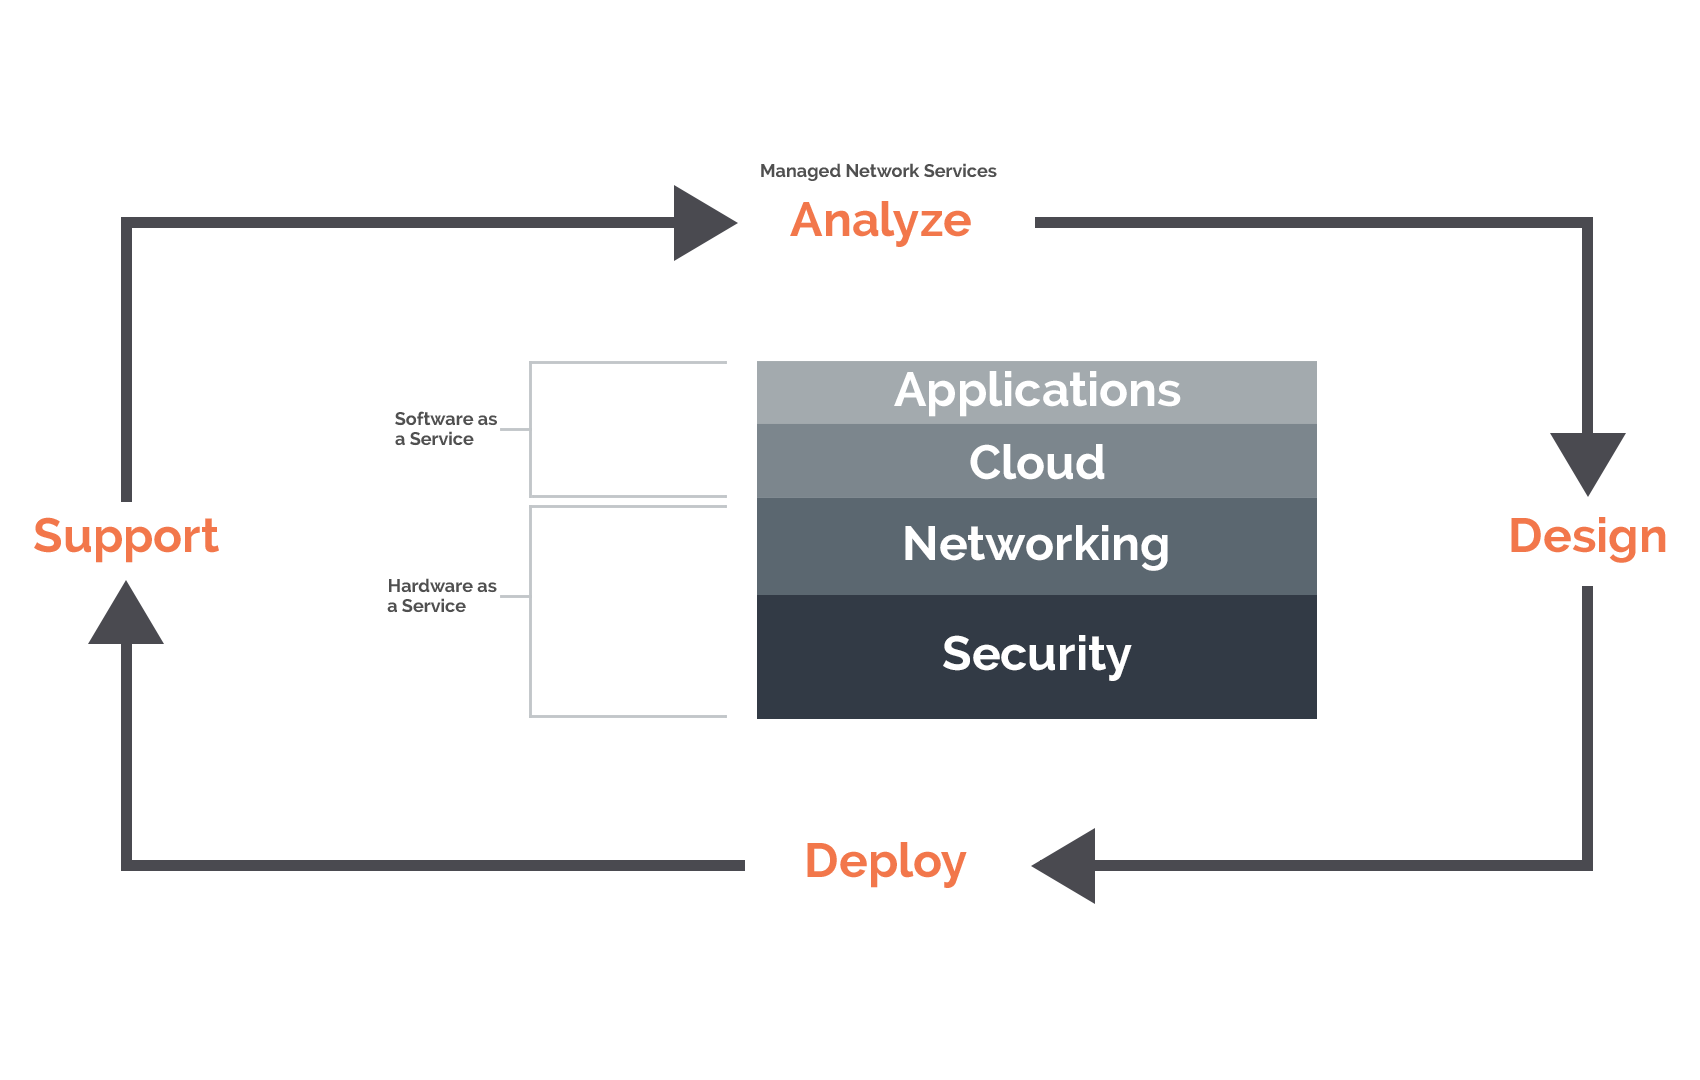 SecurEdge-Wi-Fi-as-a-Service-Managed-Services-Process-Flow-and-Infrastructure-Stack-Diagram.png